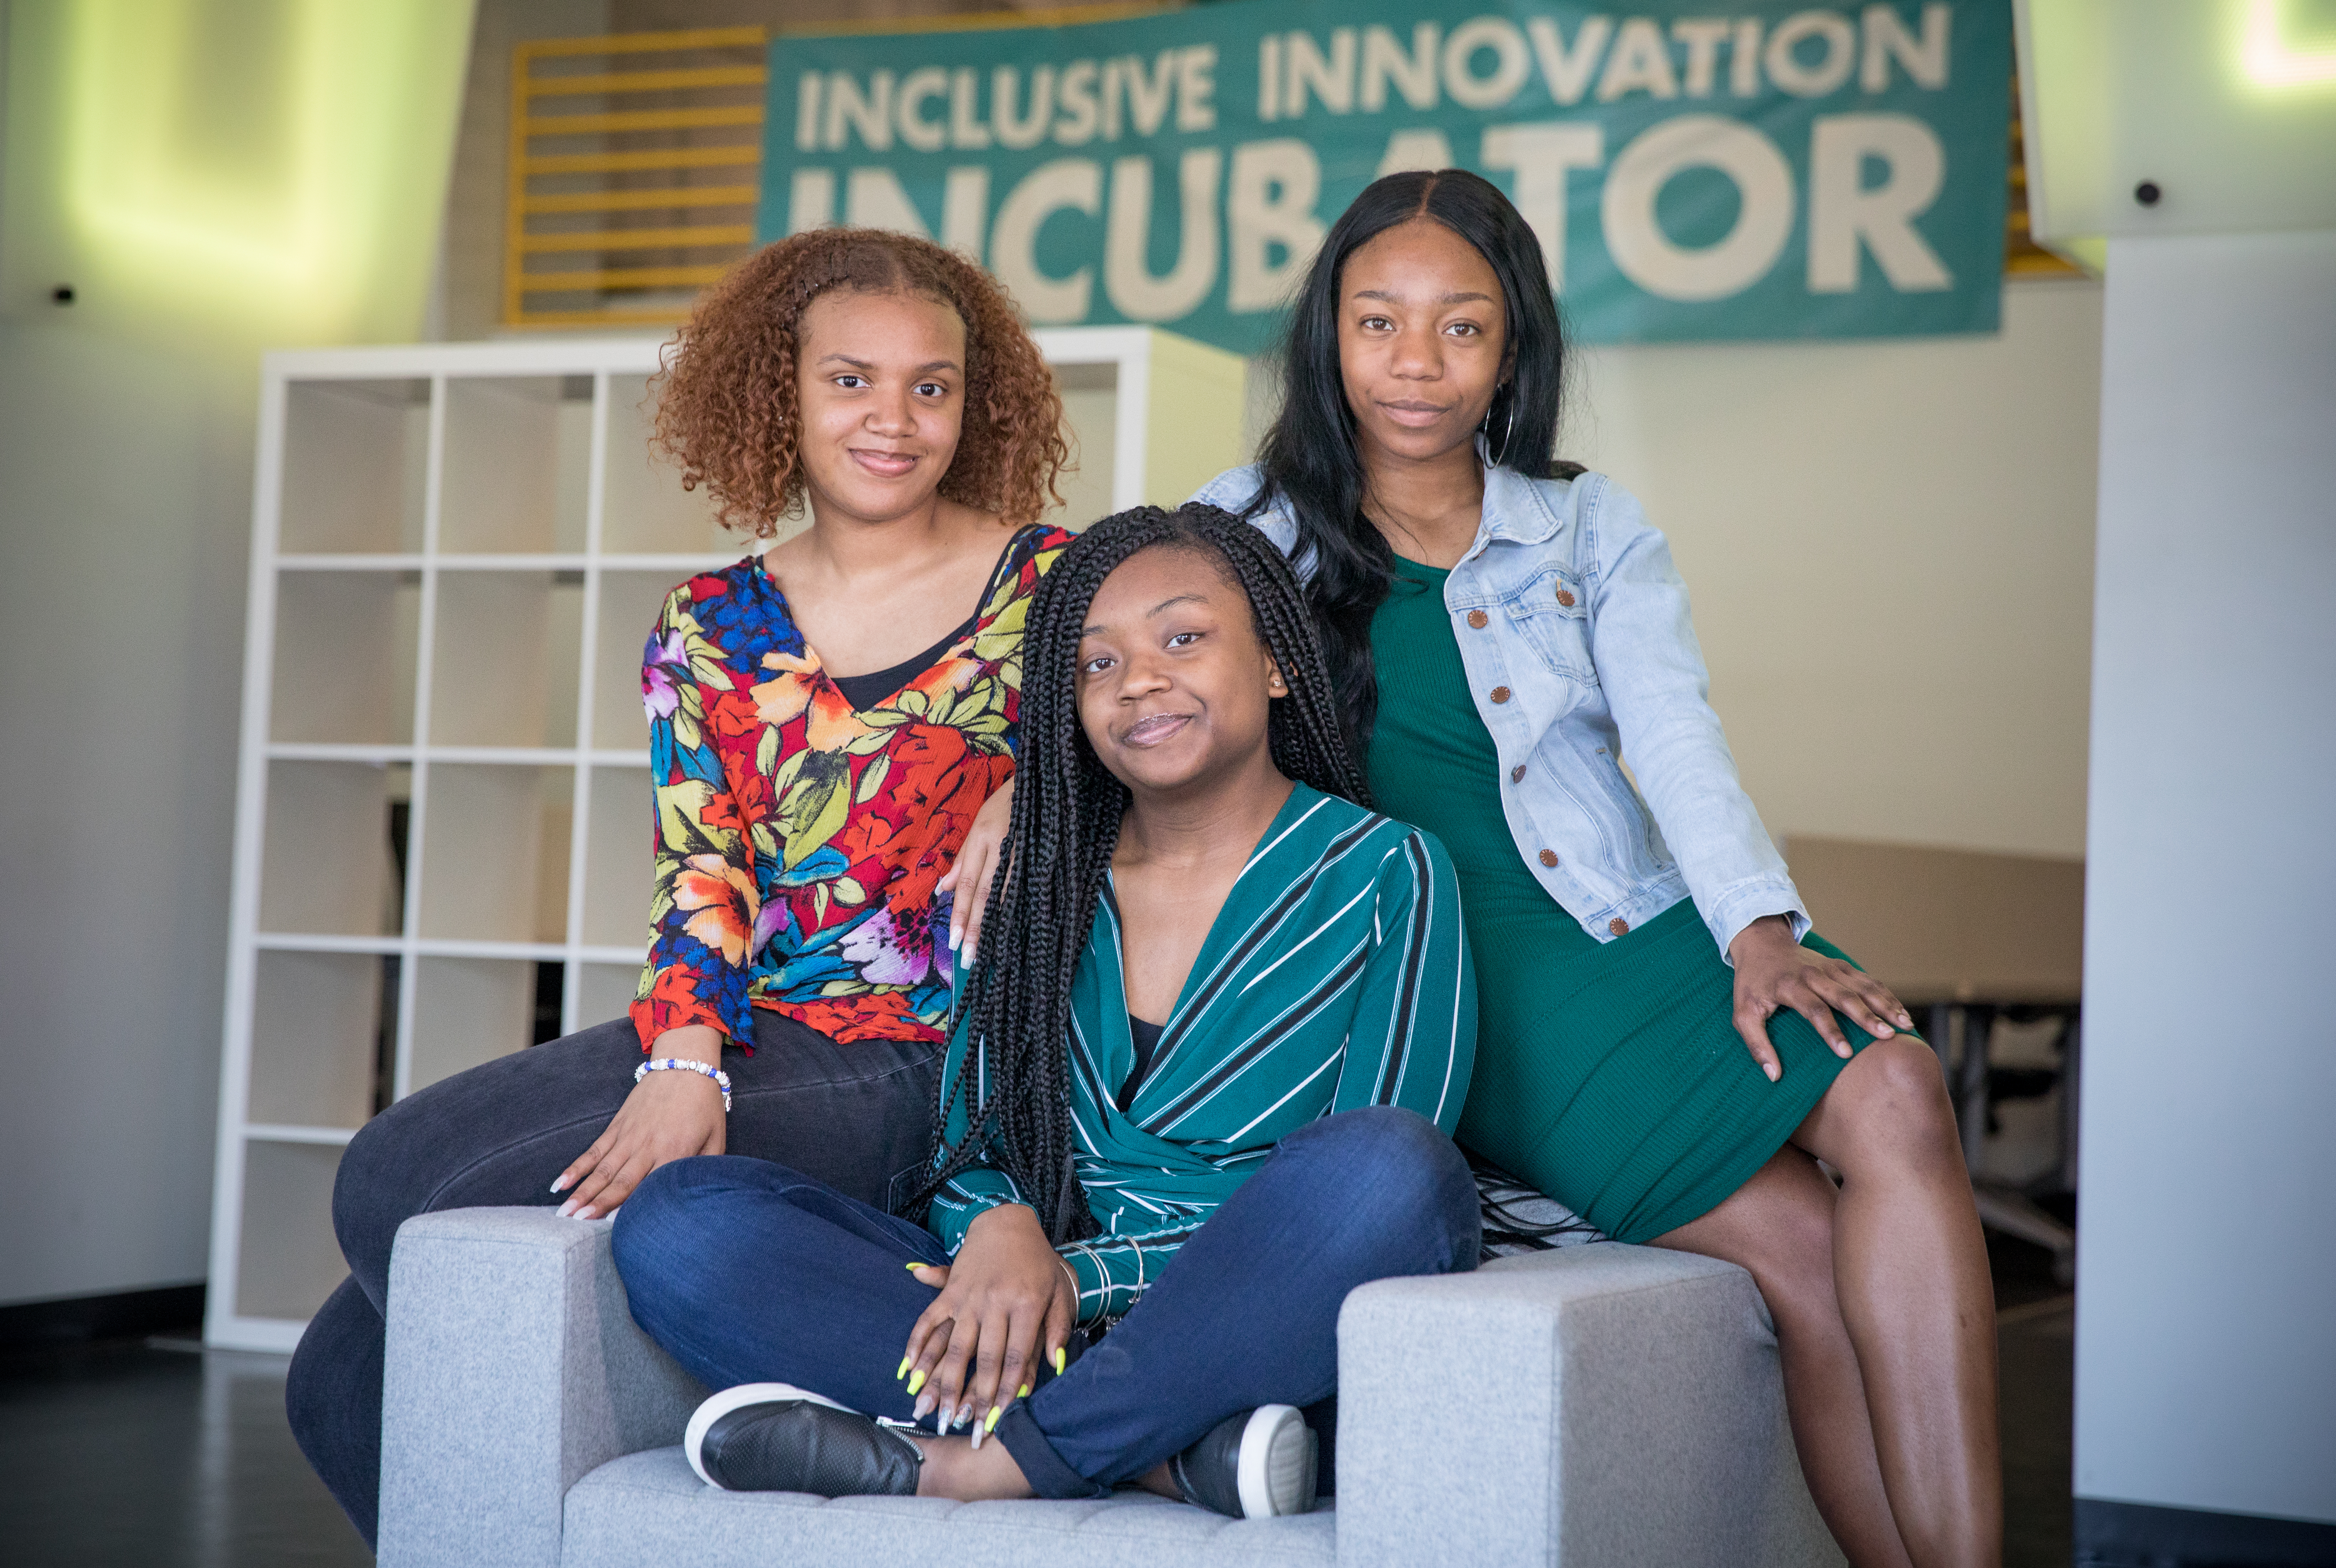 From left: India Skinner, Mikayla Sharrieff, and Bria Snell, 11th graders from Banneker High School in Washington, D.C., finalists in a NASA youth science competition, pictured on May 1, 2018.